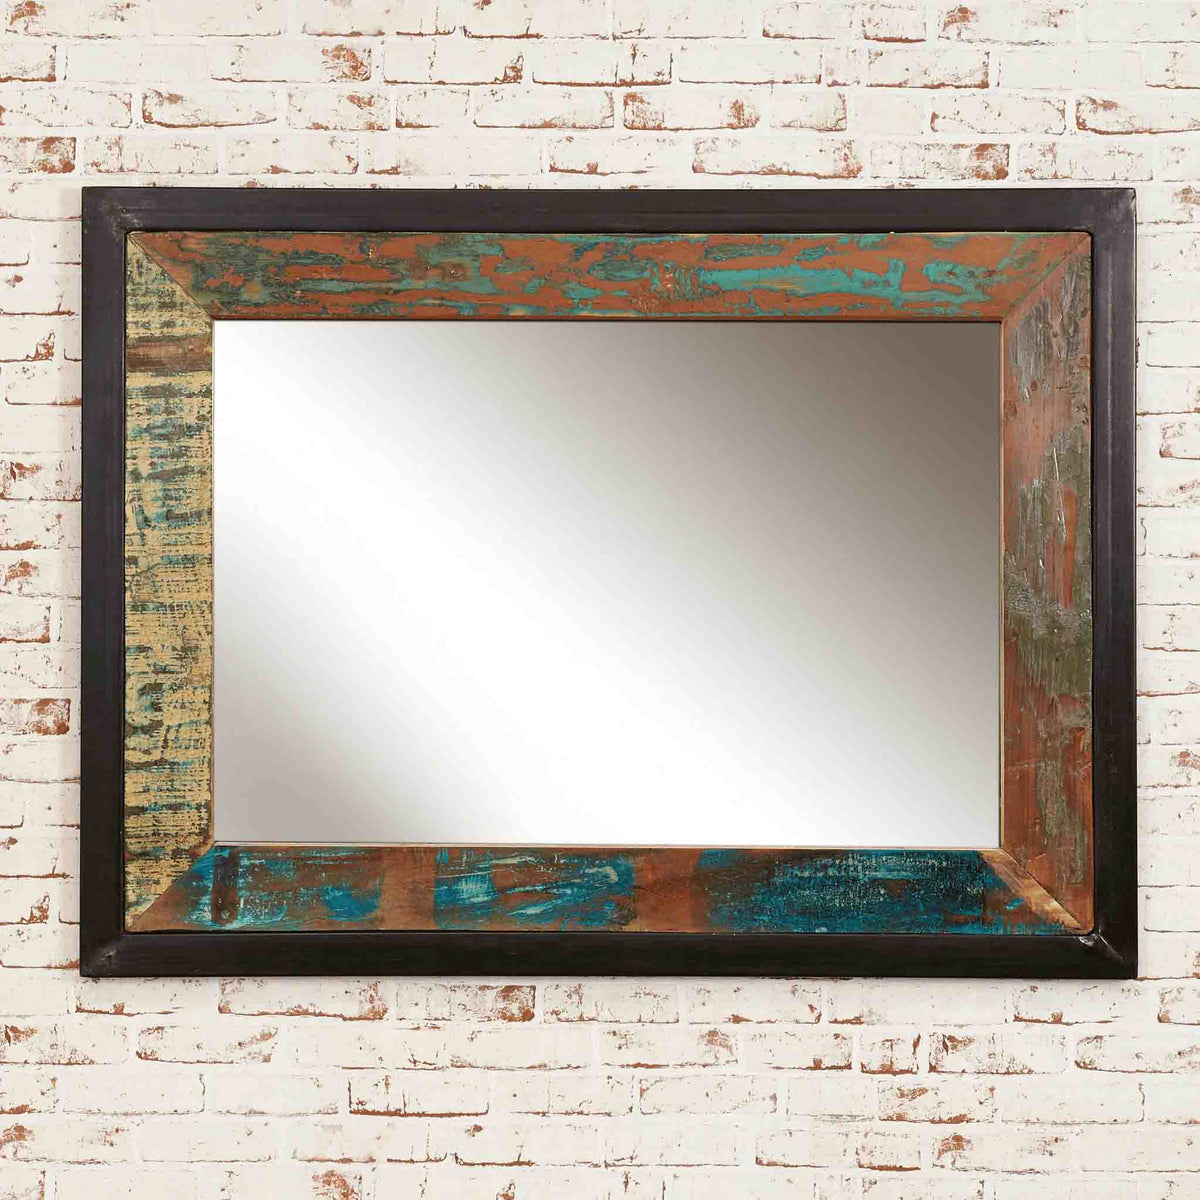 The Urban Chic Large Industrial Reclaimed Wood Mirror from Roseland Furniture